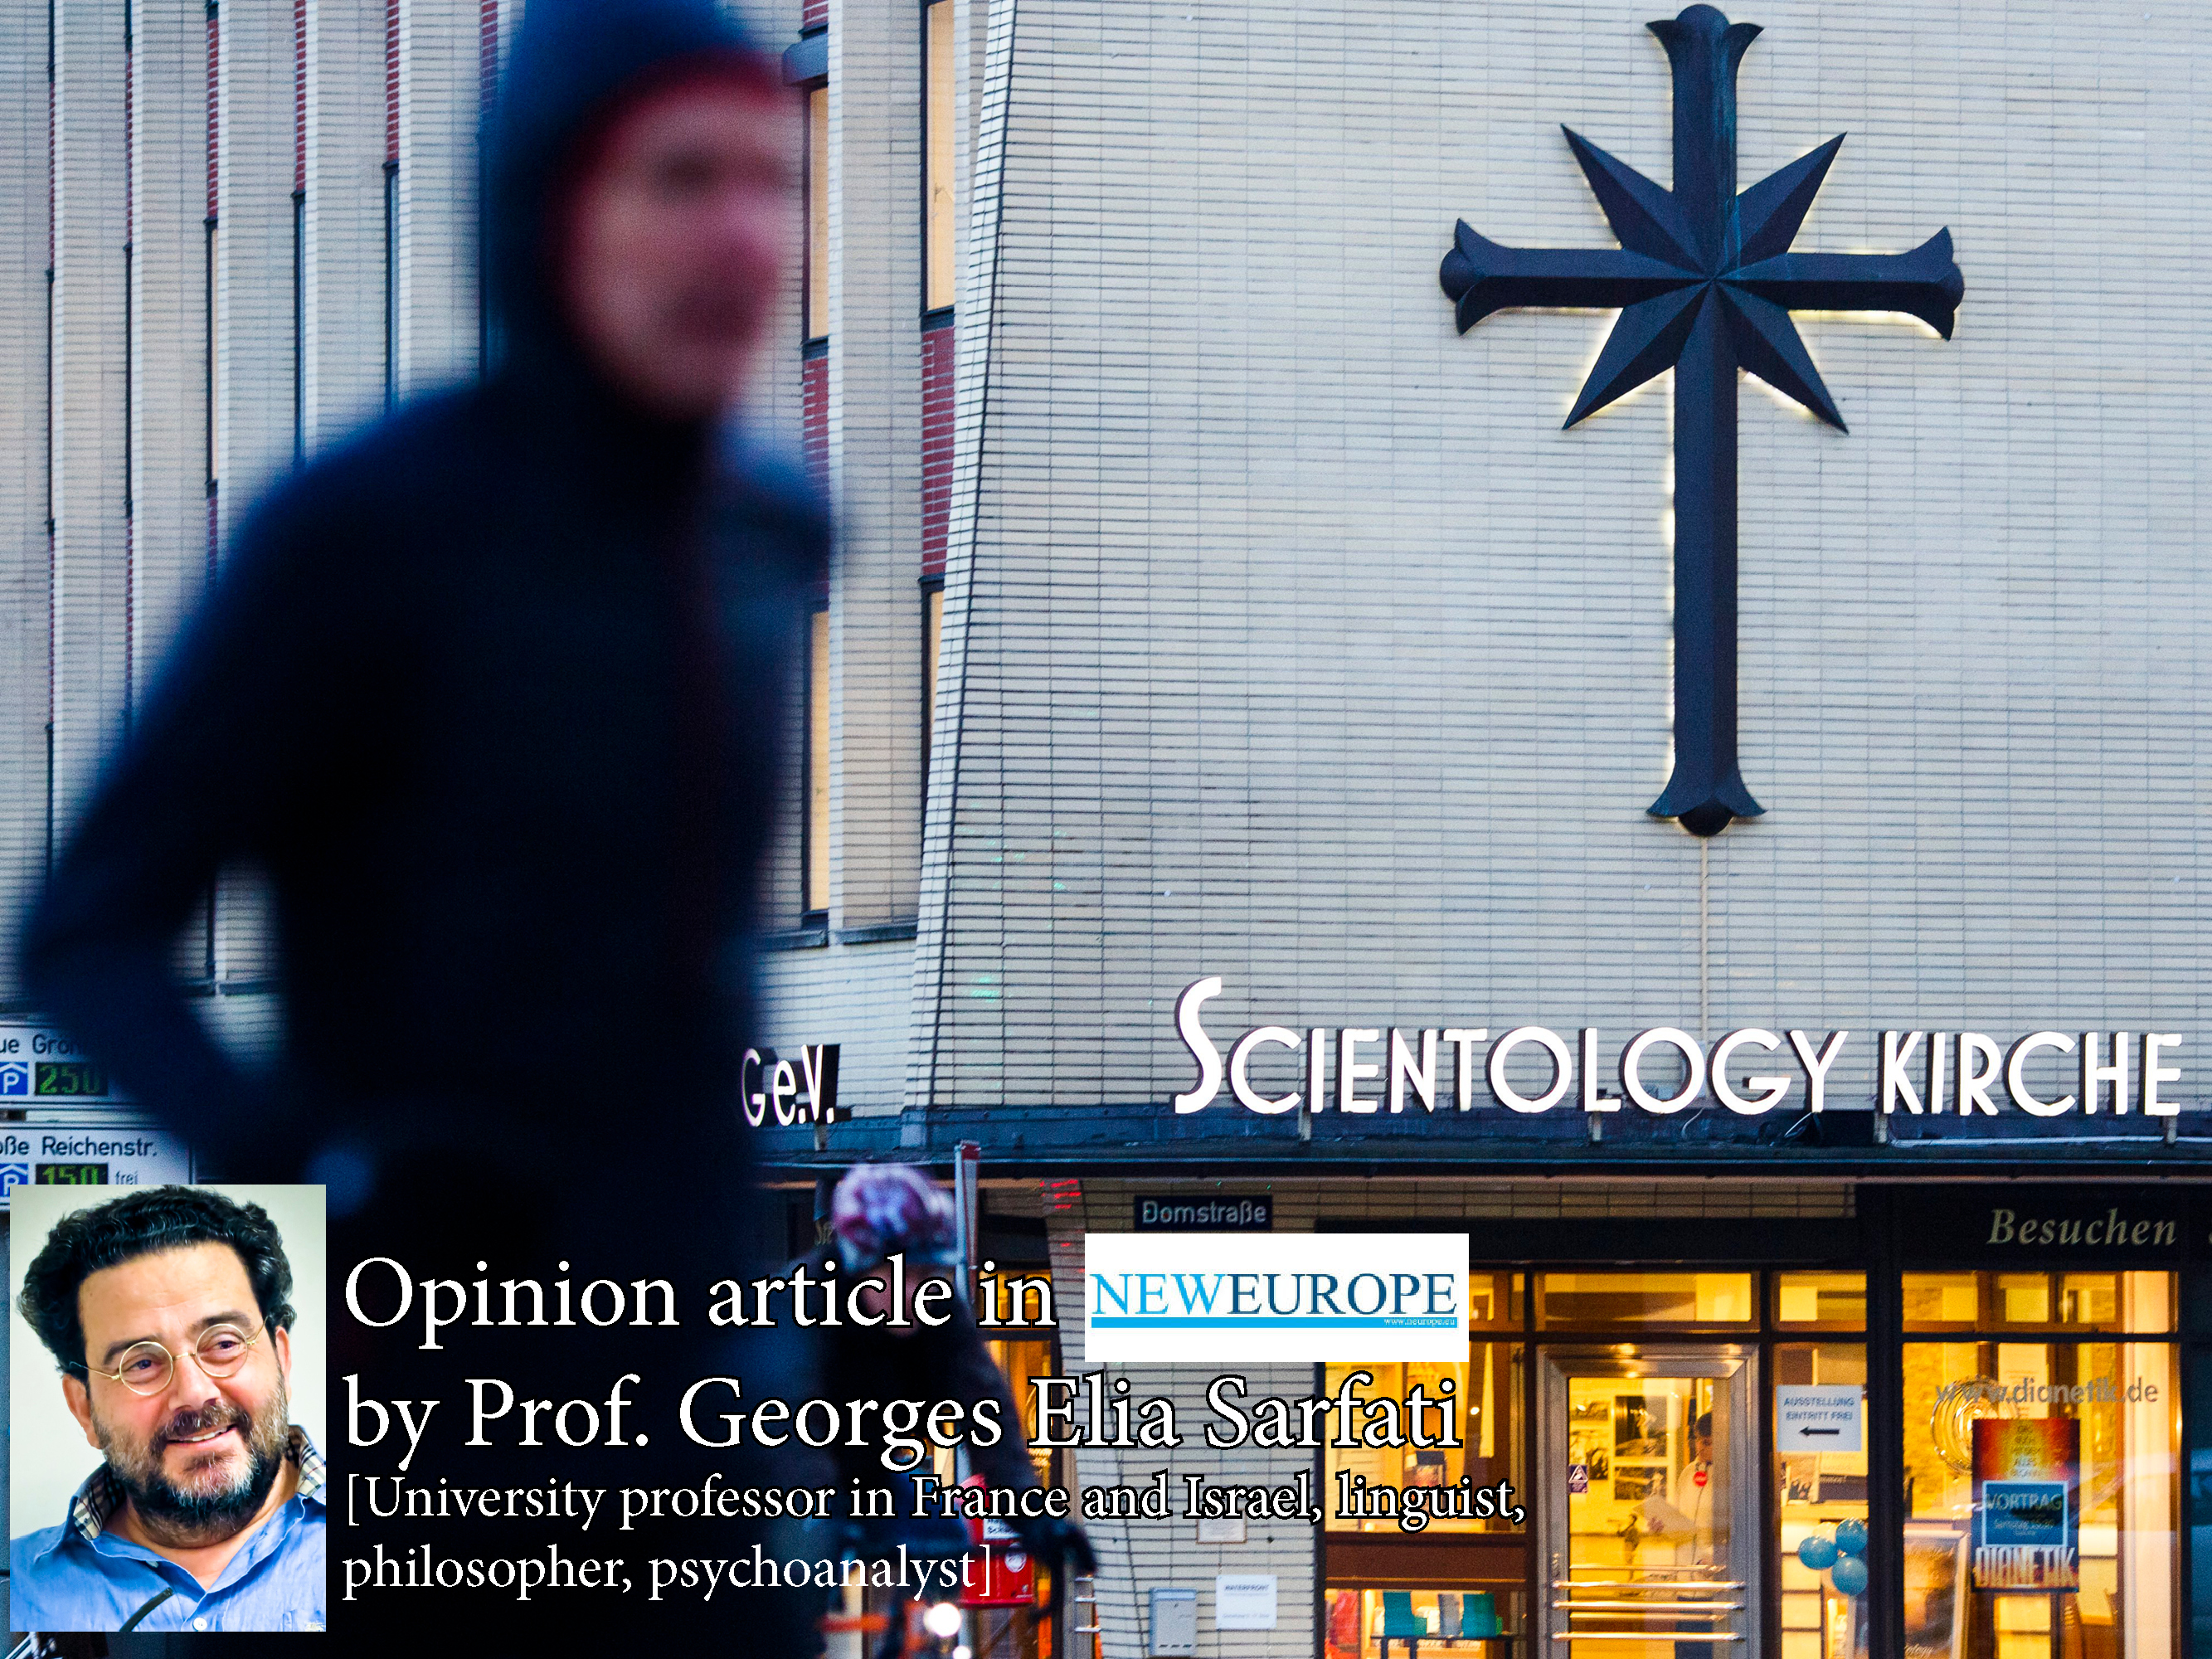 Opinion article about Discrimination of Scientologists by Munich authorities.